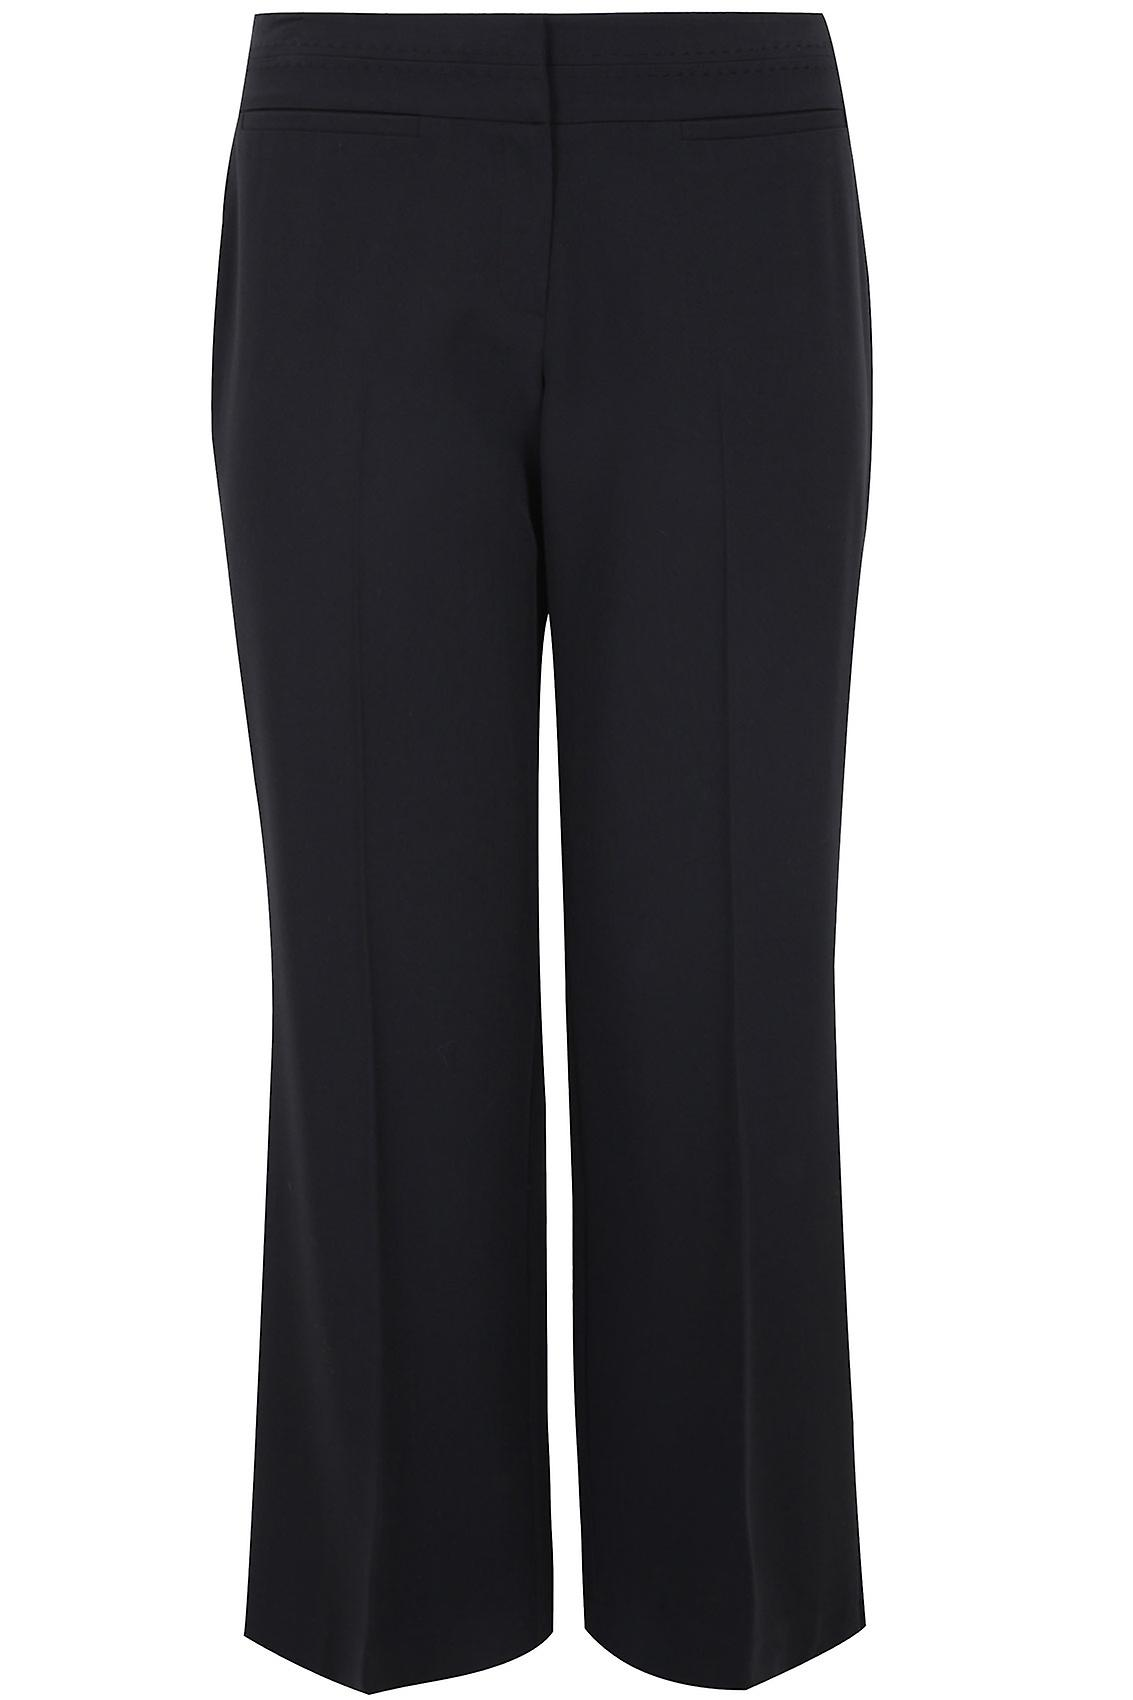 Black Wide Leg Trousers With Stab Stitch Detail